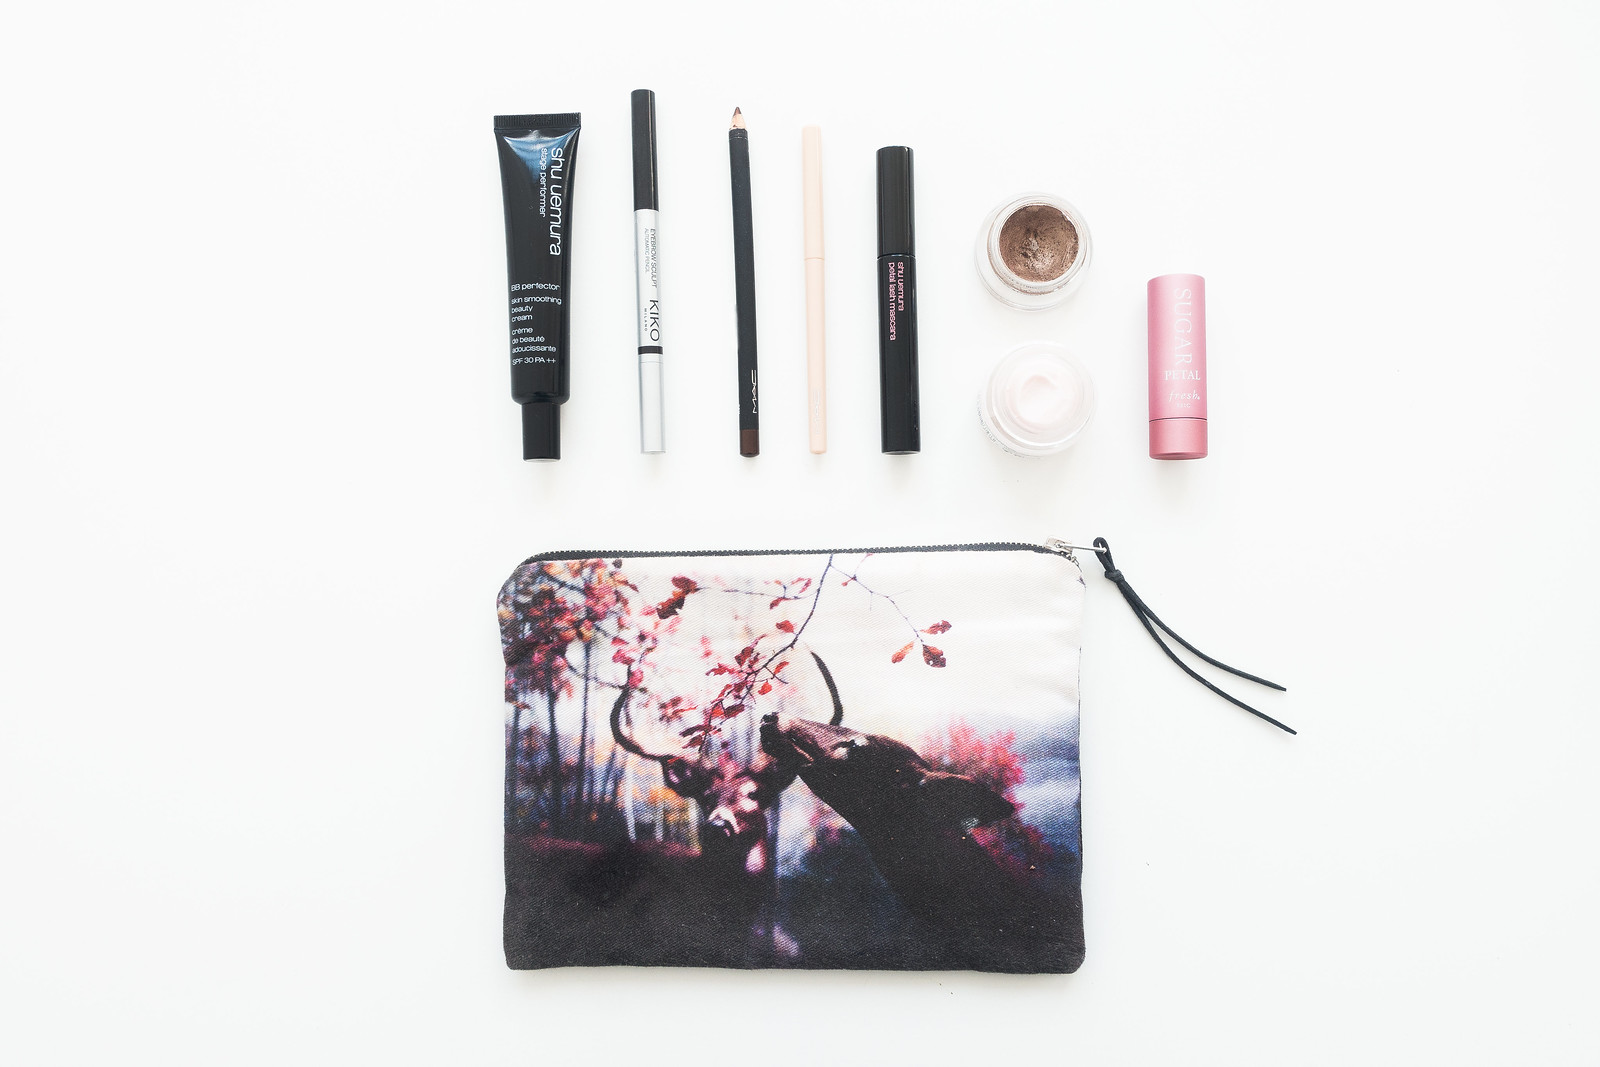 A Minimalist Make-up Bag